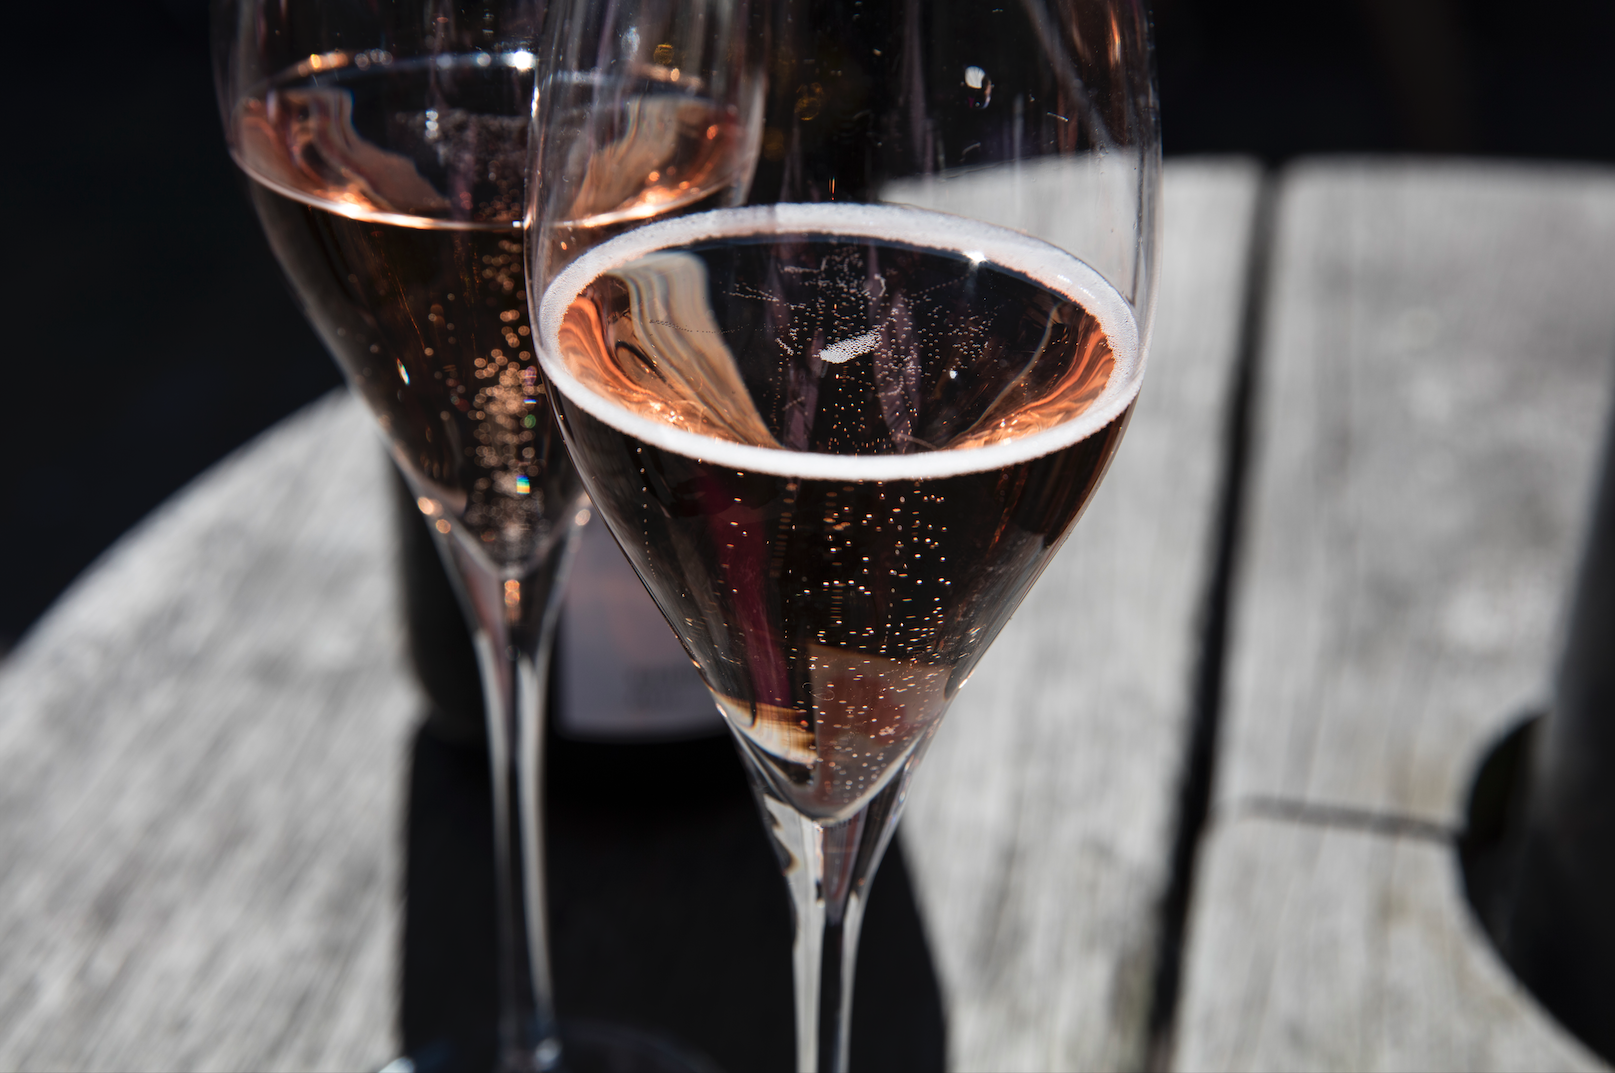 It's rosé. But not as you know it…